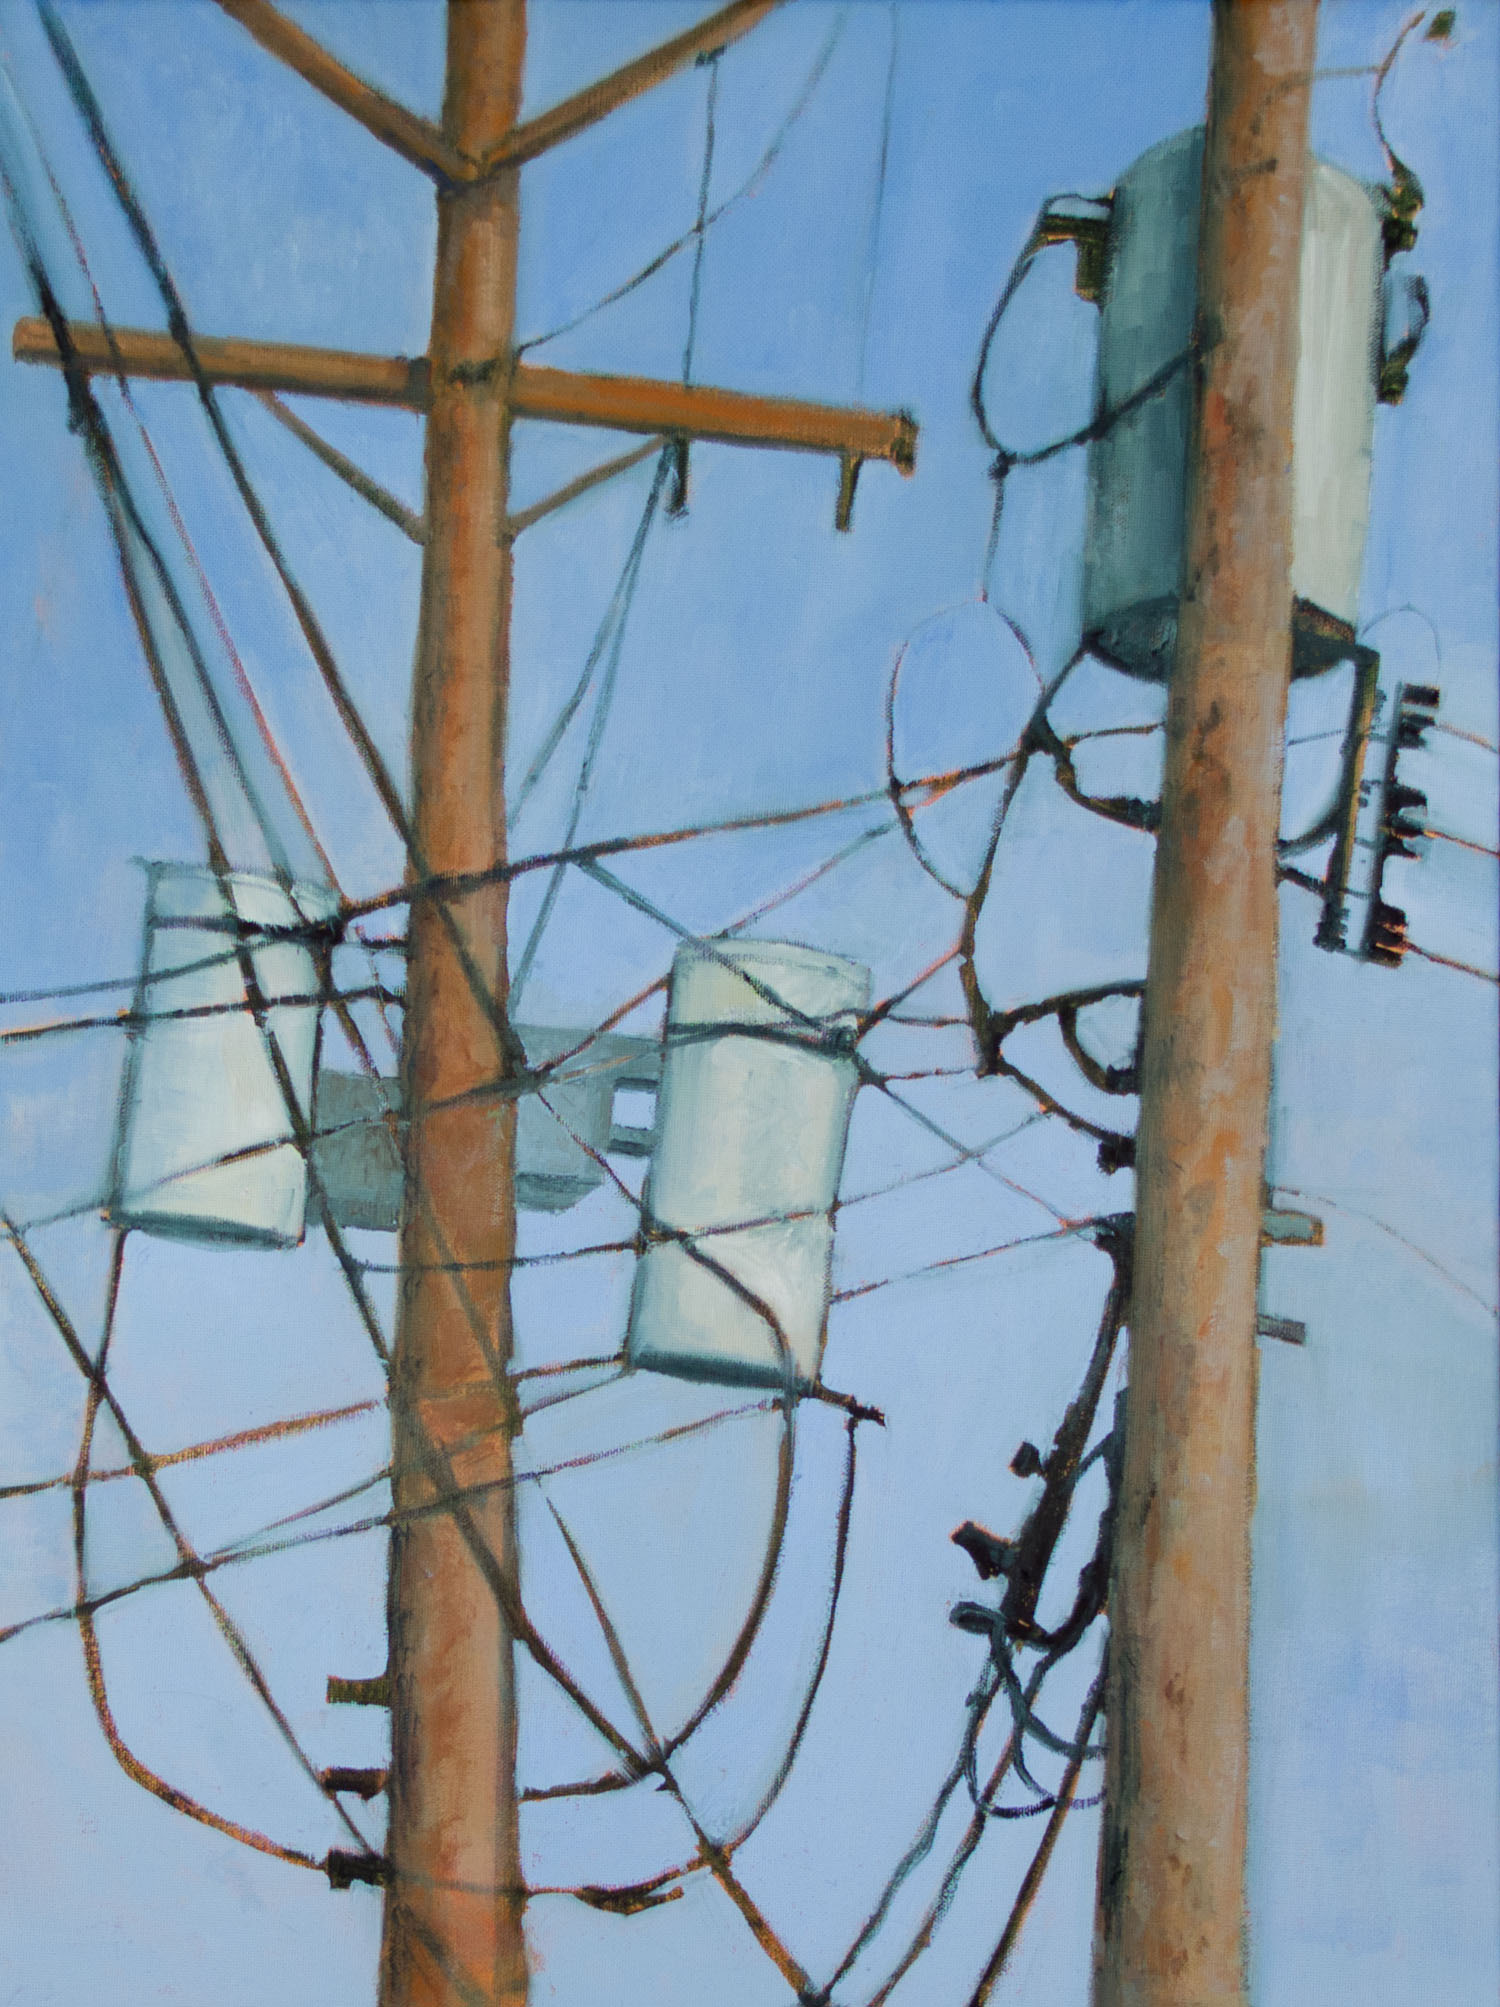 Wires Composed